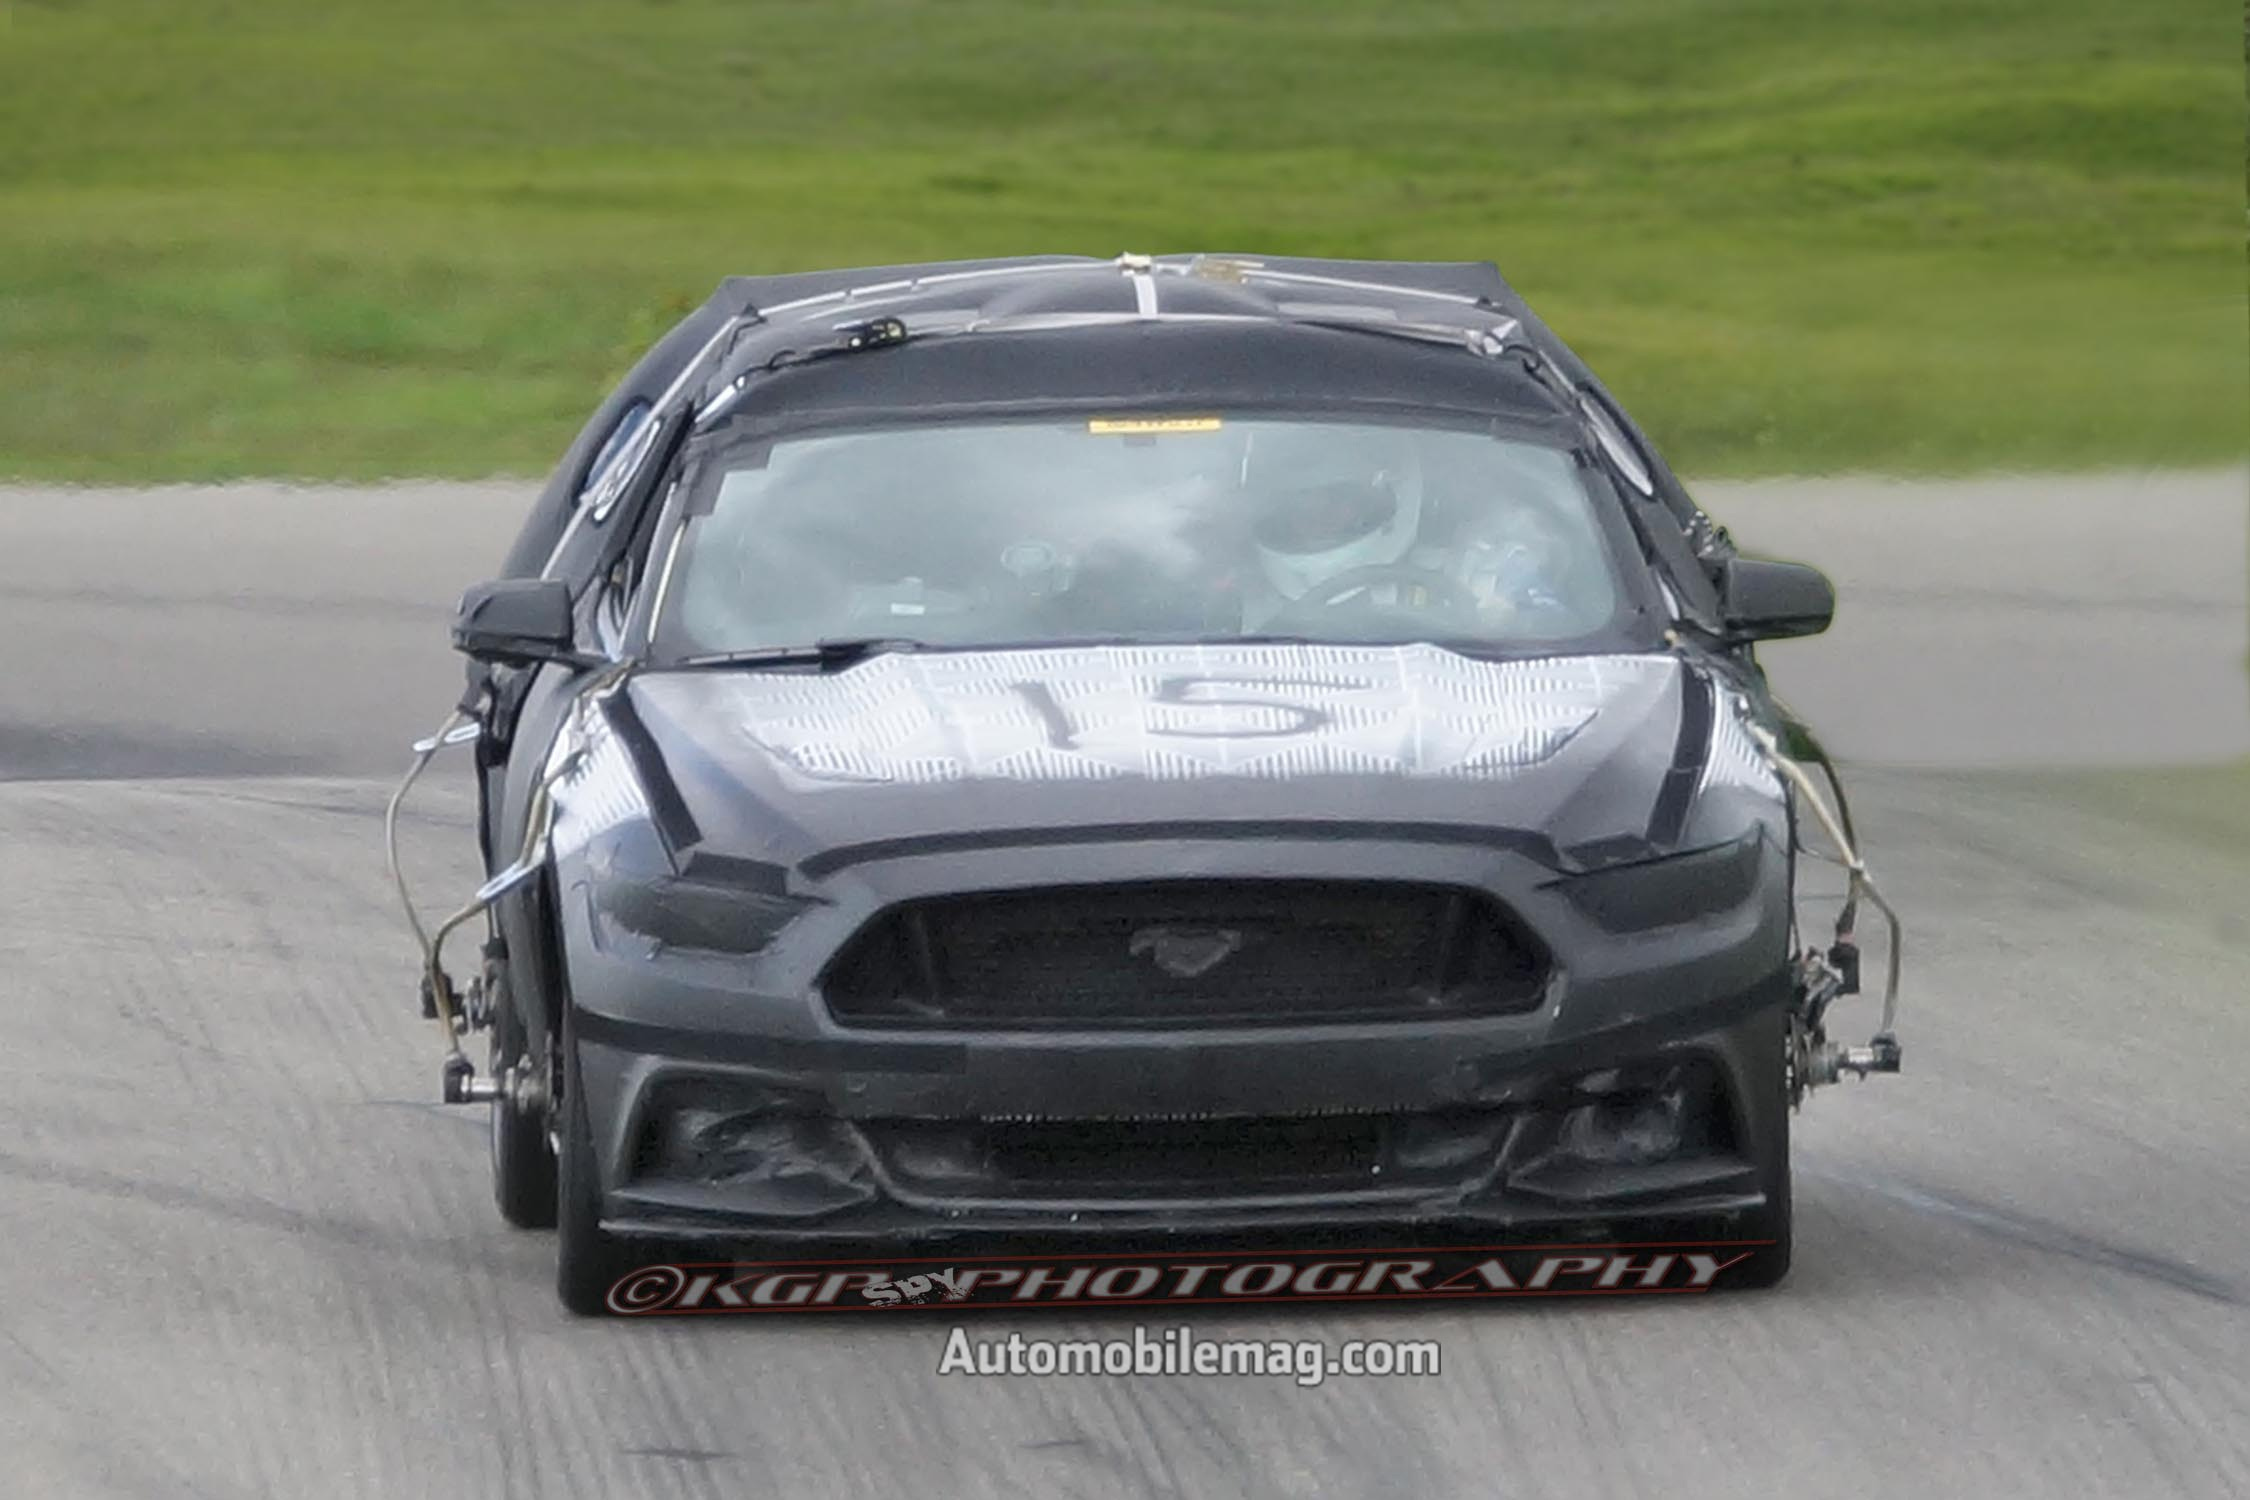 2015 Ford Mustang Undisguised Prototype Front View 41